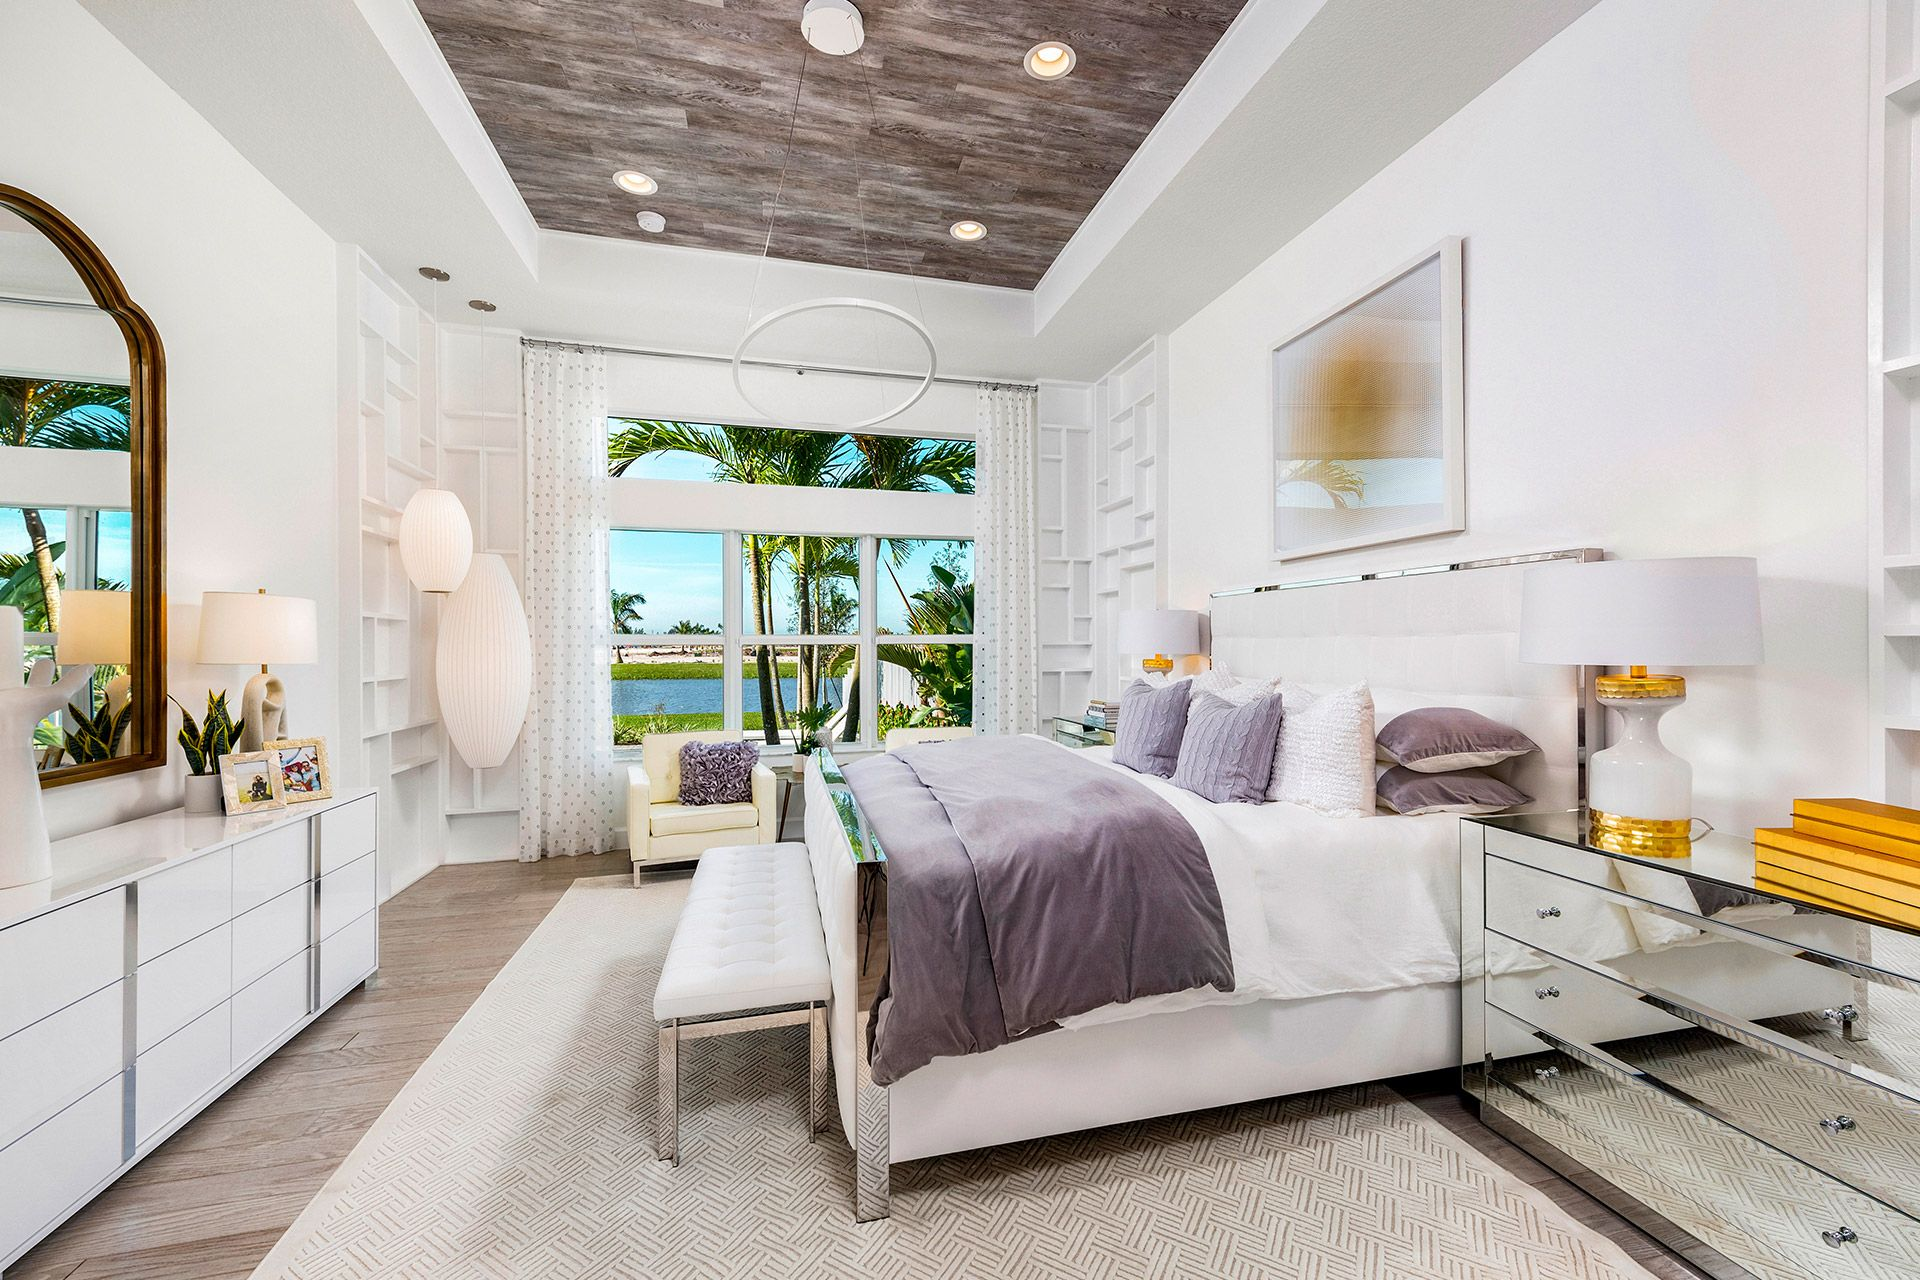 Bedroom featured in the Alexandra Grande By GL Homes in Palm Beach County, FL